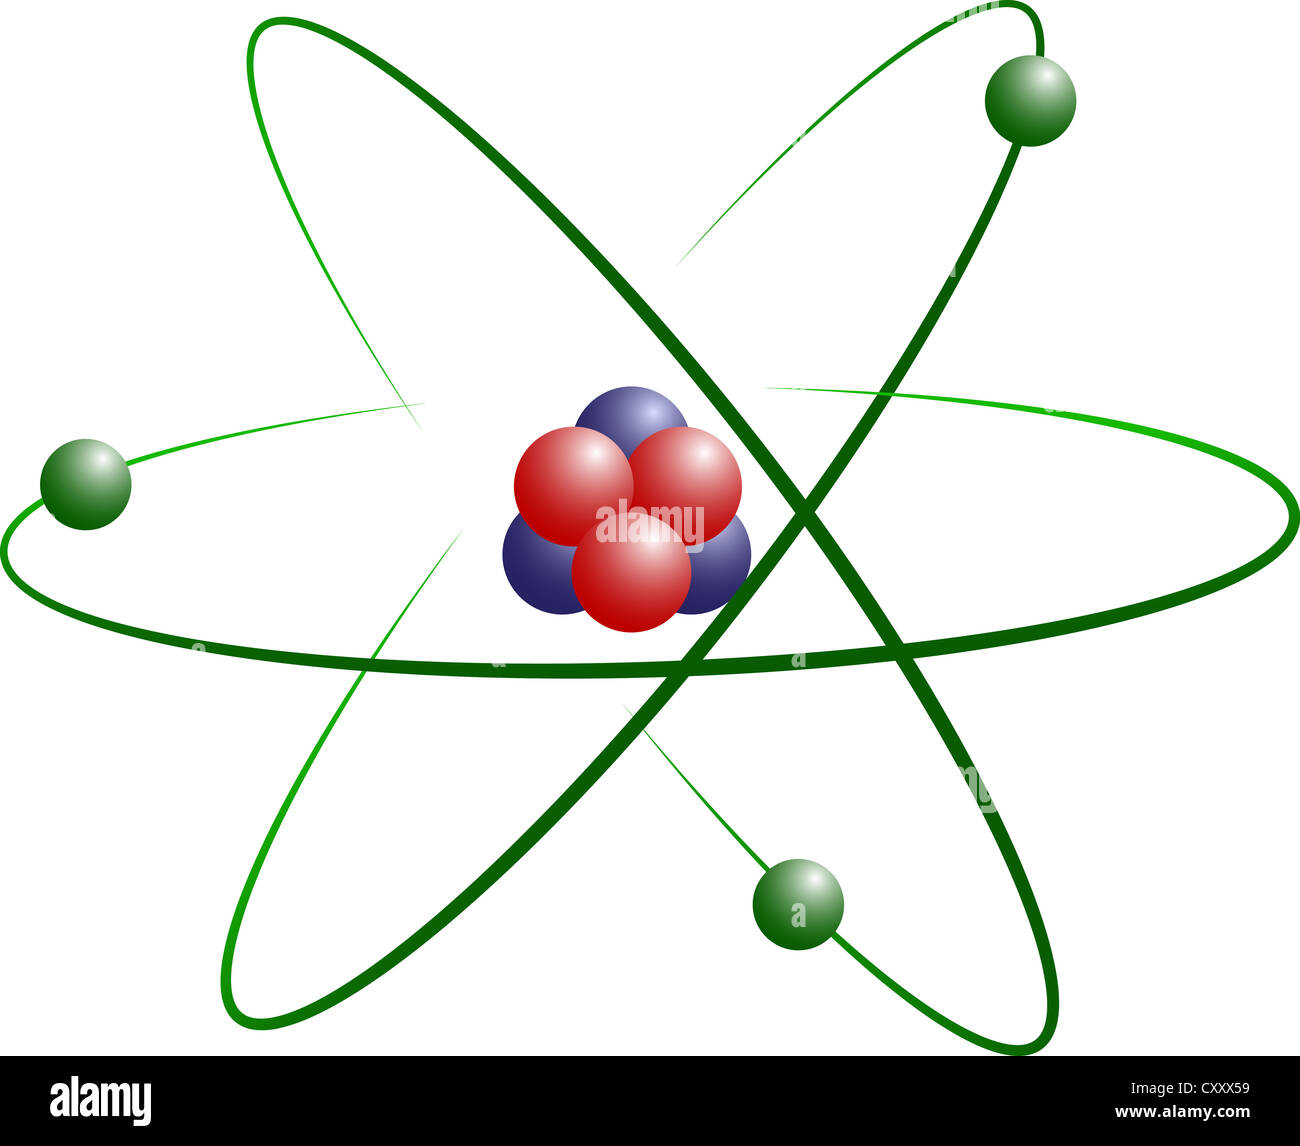 hight resolution of atom model of lithium with protons electrons and neutrons